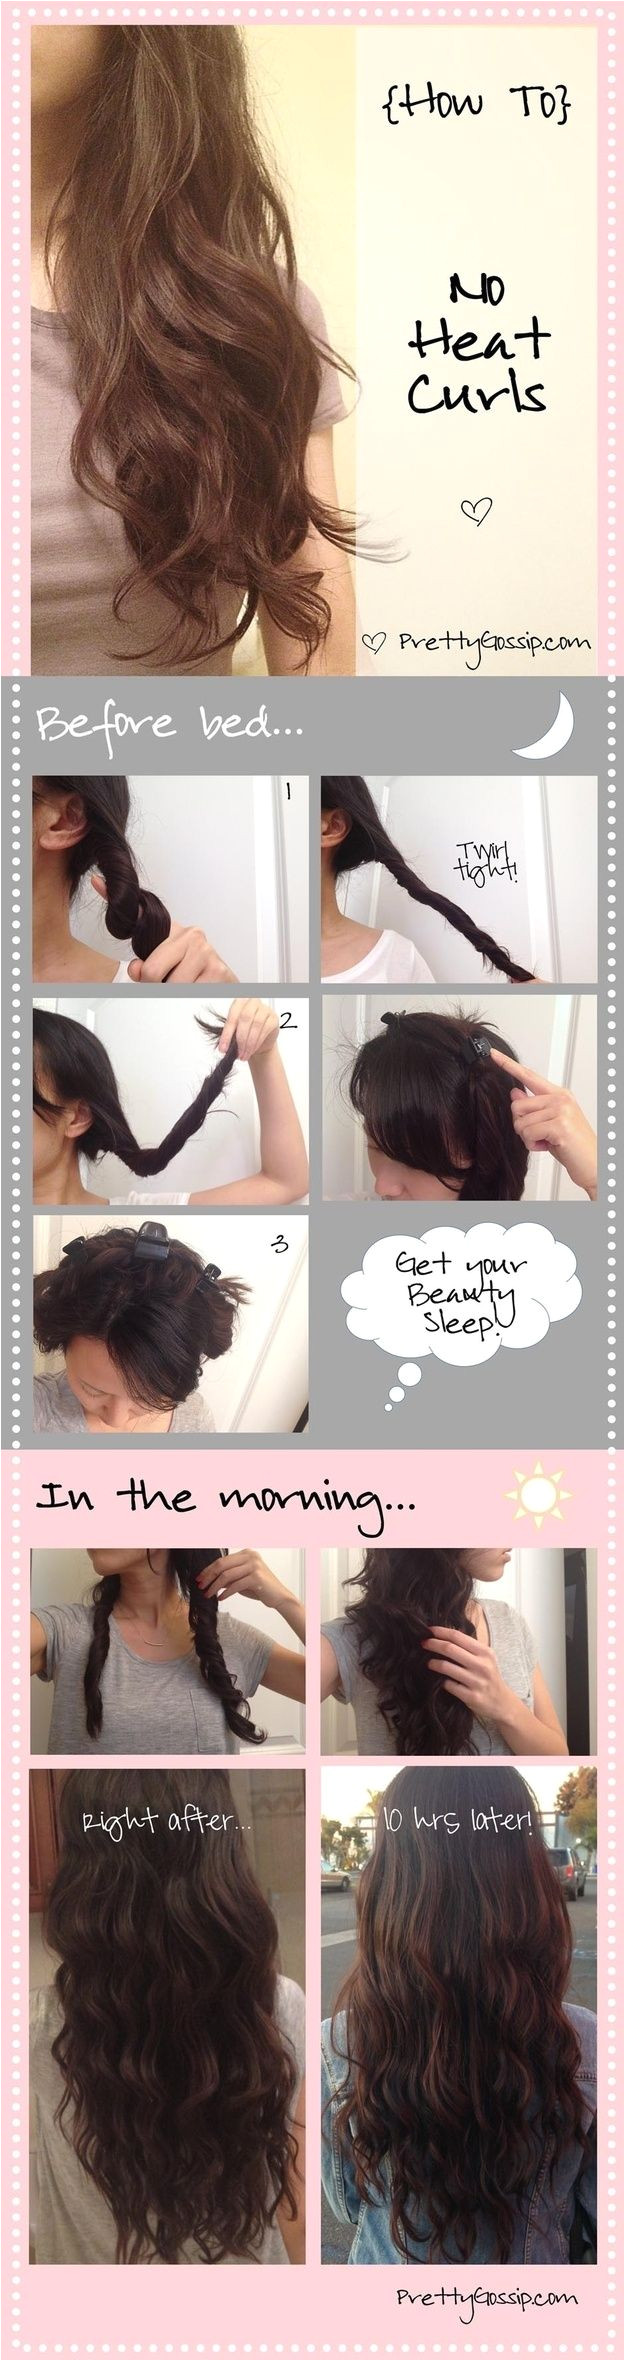 you can these perfect spirals by doing a one minute prep the night before